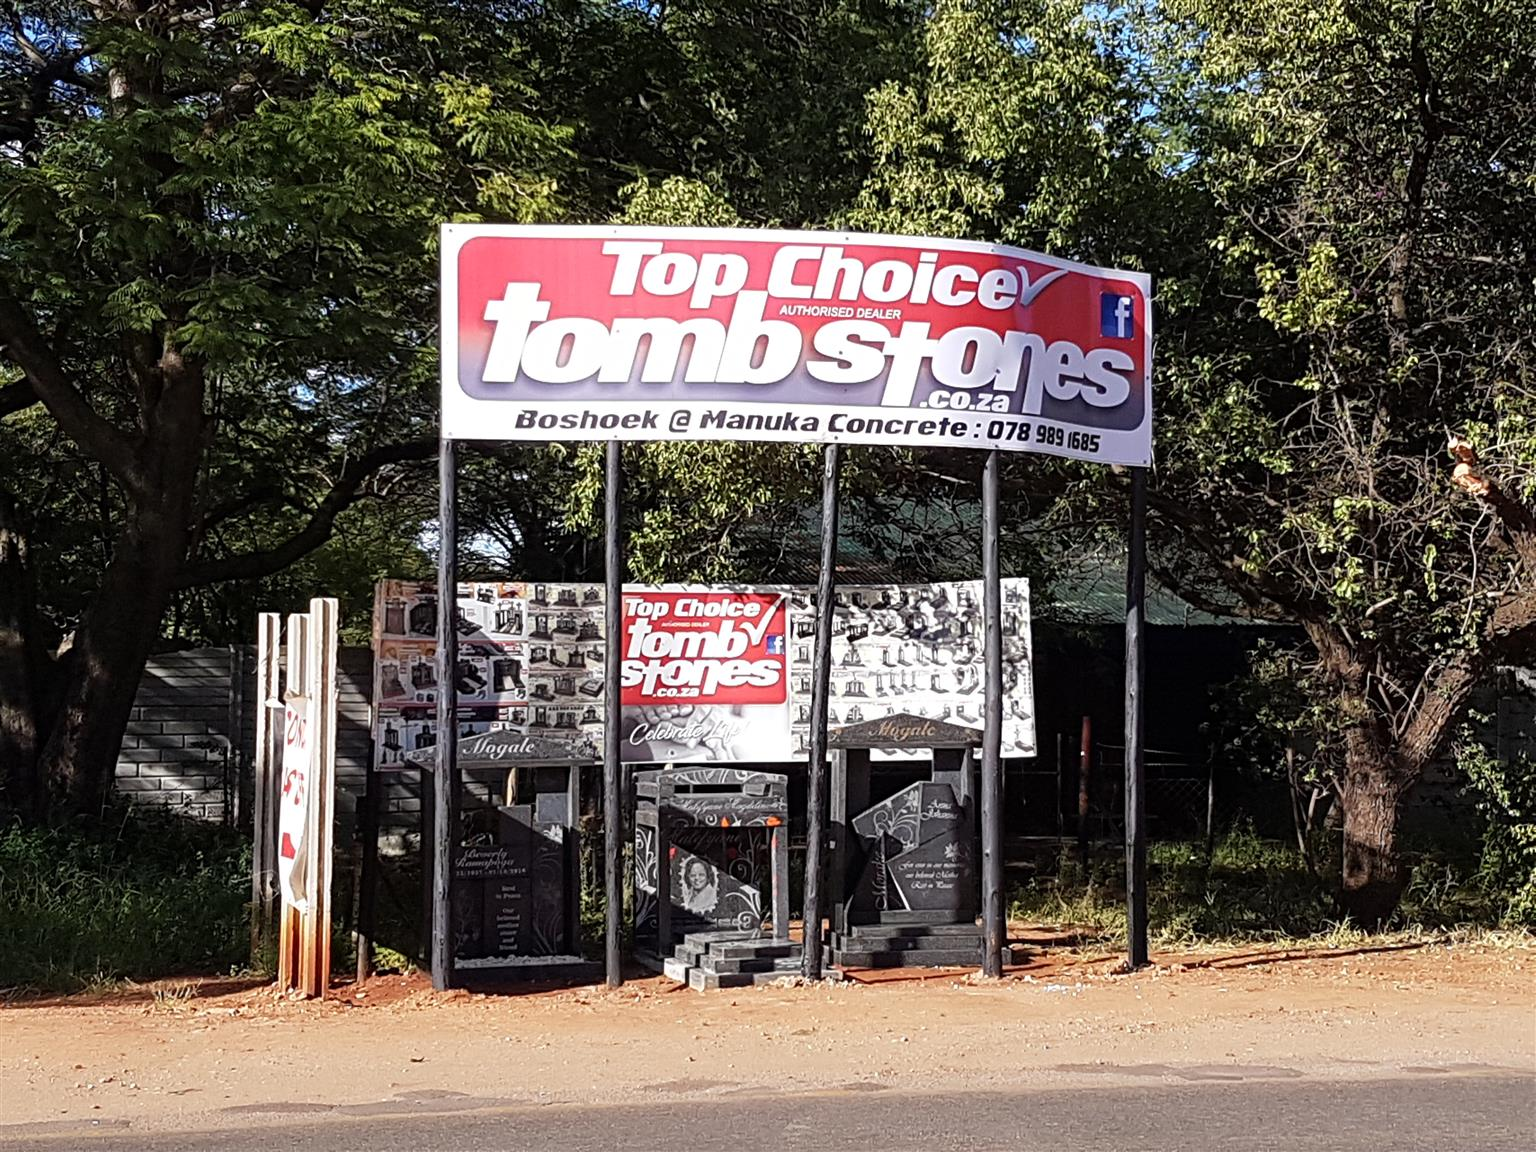 Tombstones franchise looking for free retail floor space in exchange for 30% profit on all sales